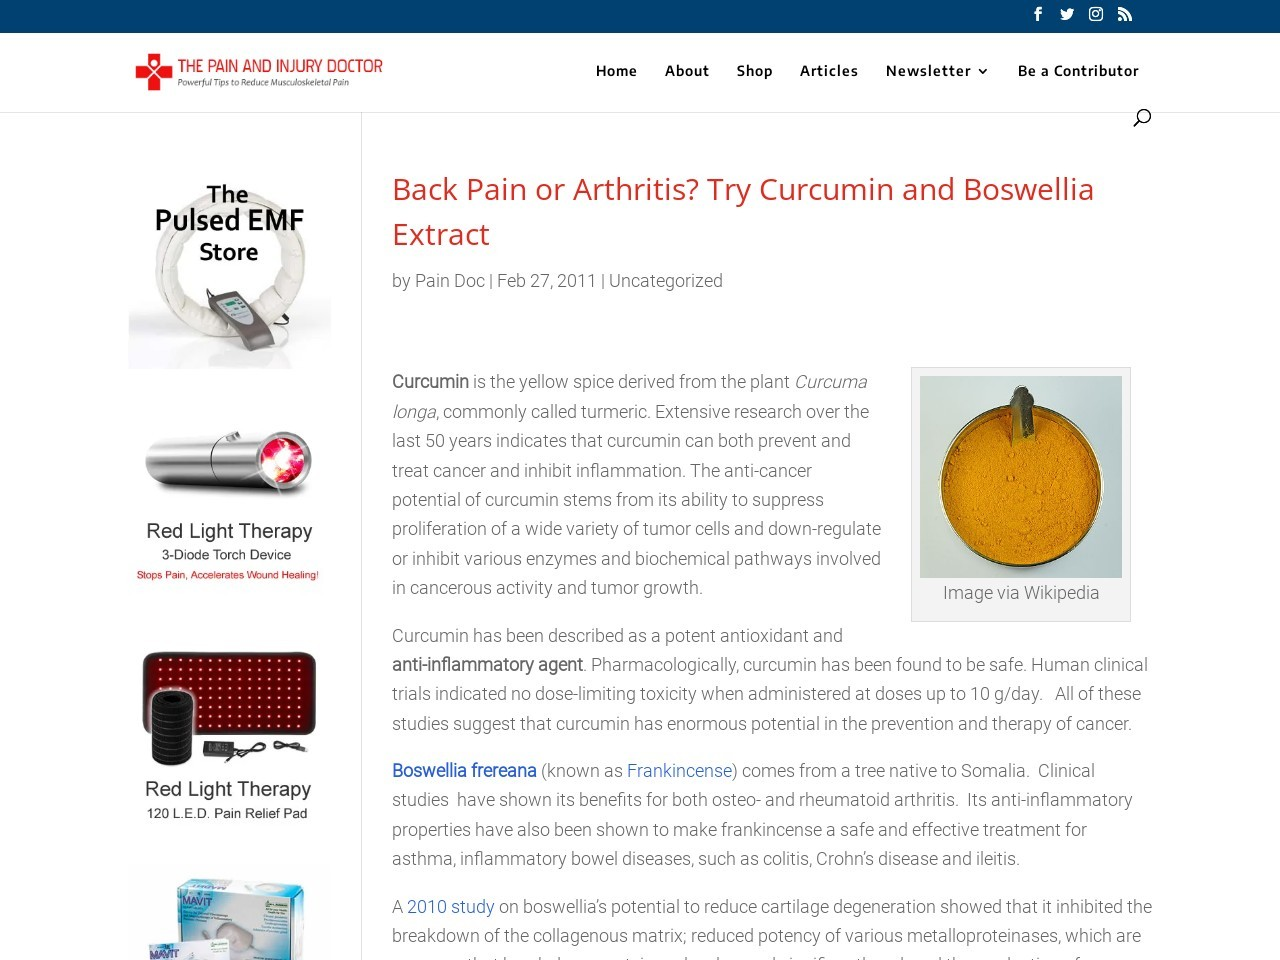 Back Pain or Arthritis? Try Curcumin and Boswellia Extract